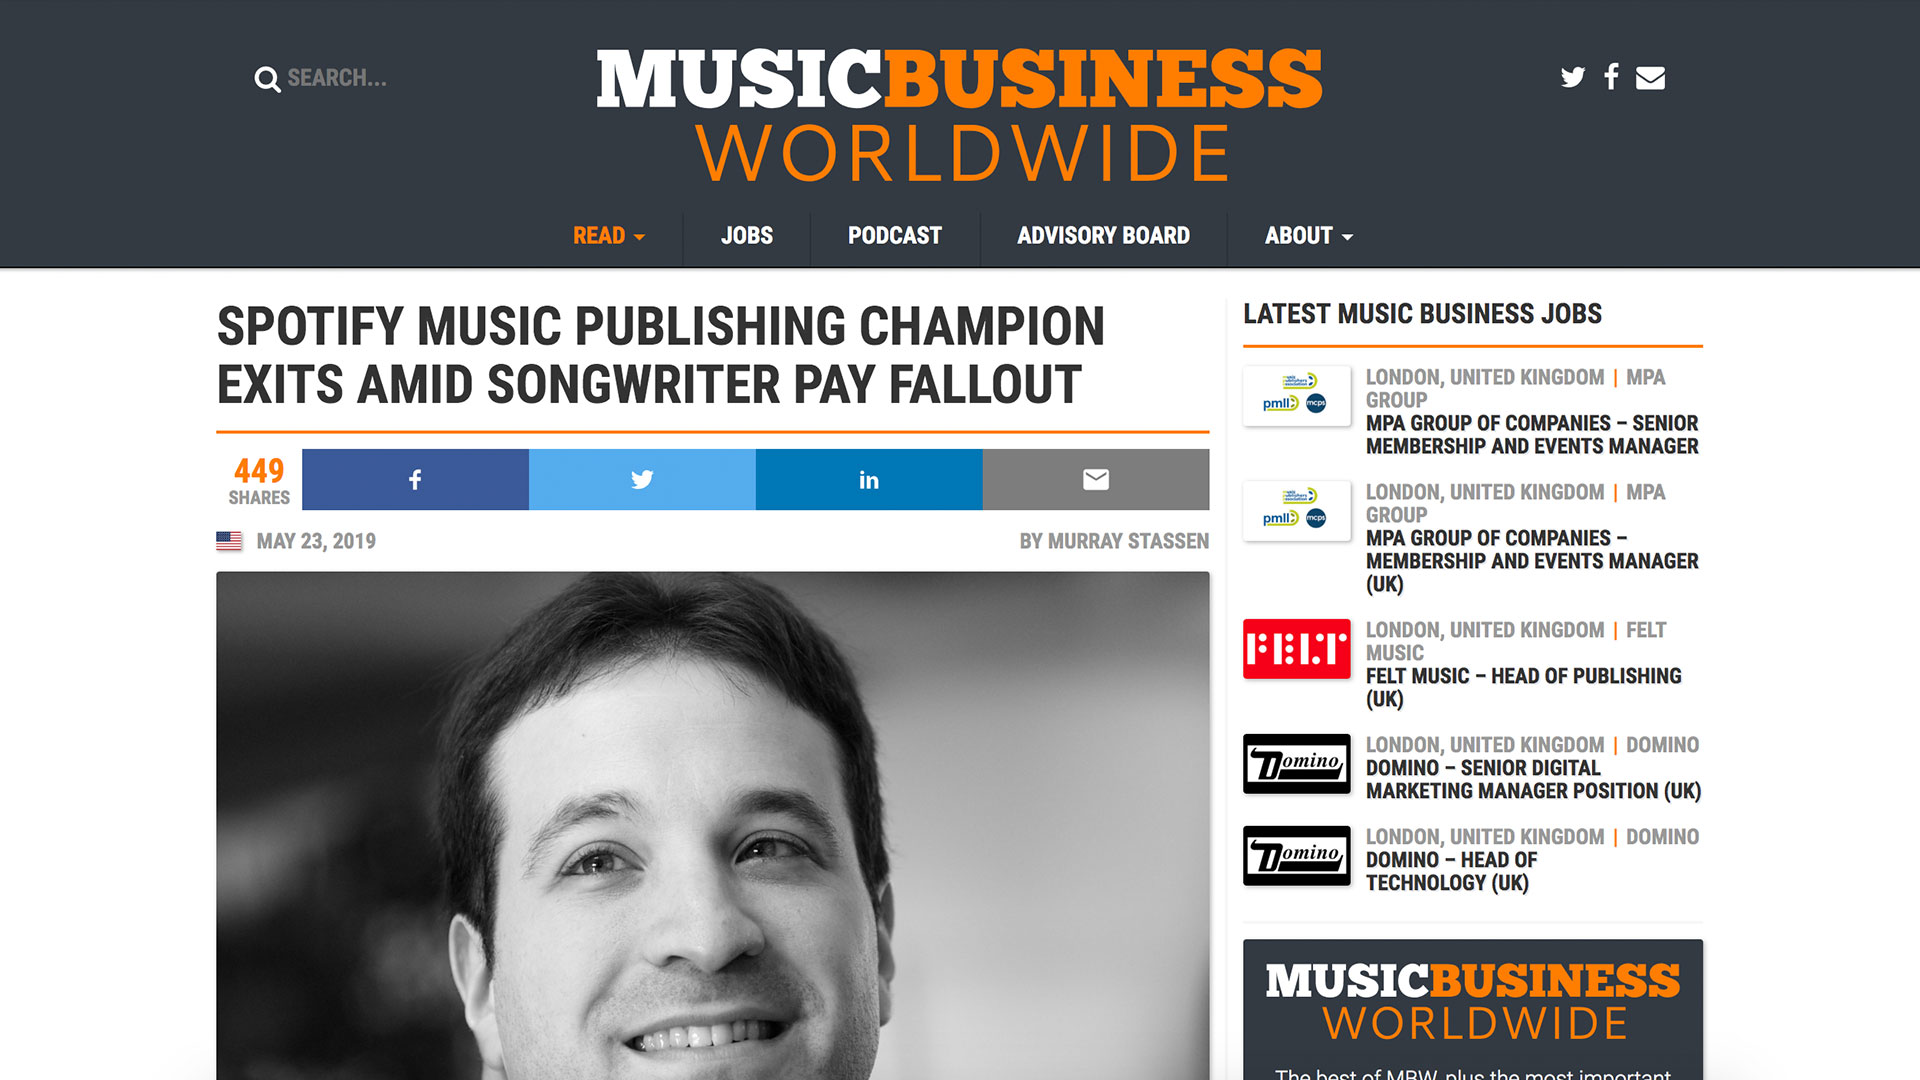 Fairness Rocks News SPOTIFY MUSIC PUBLISHING CHAMPION EXITS AMID SONGWRITER PAY FALLOUT